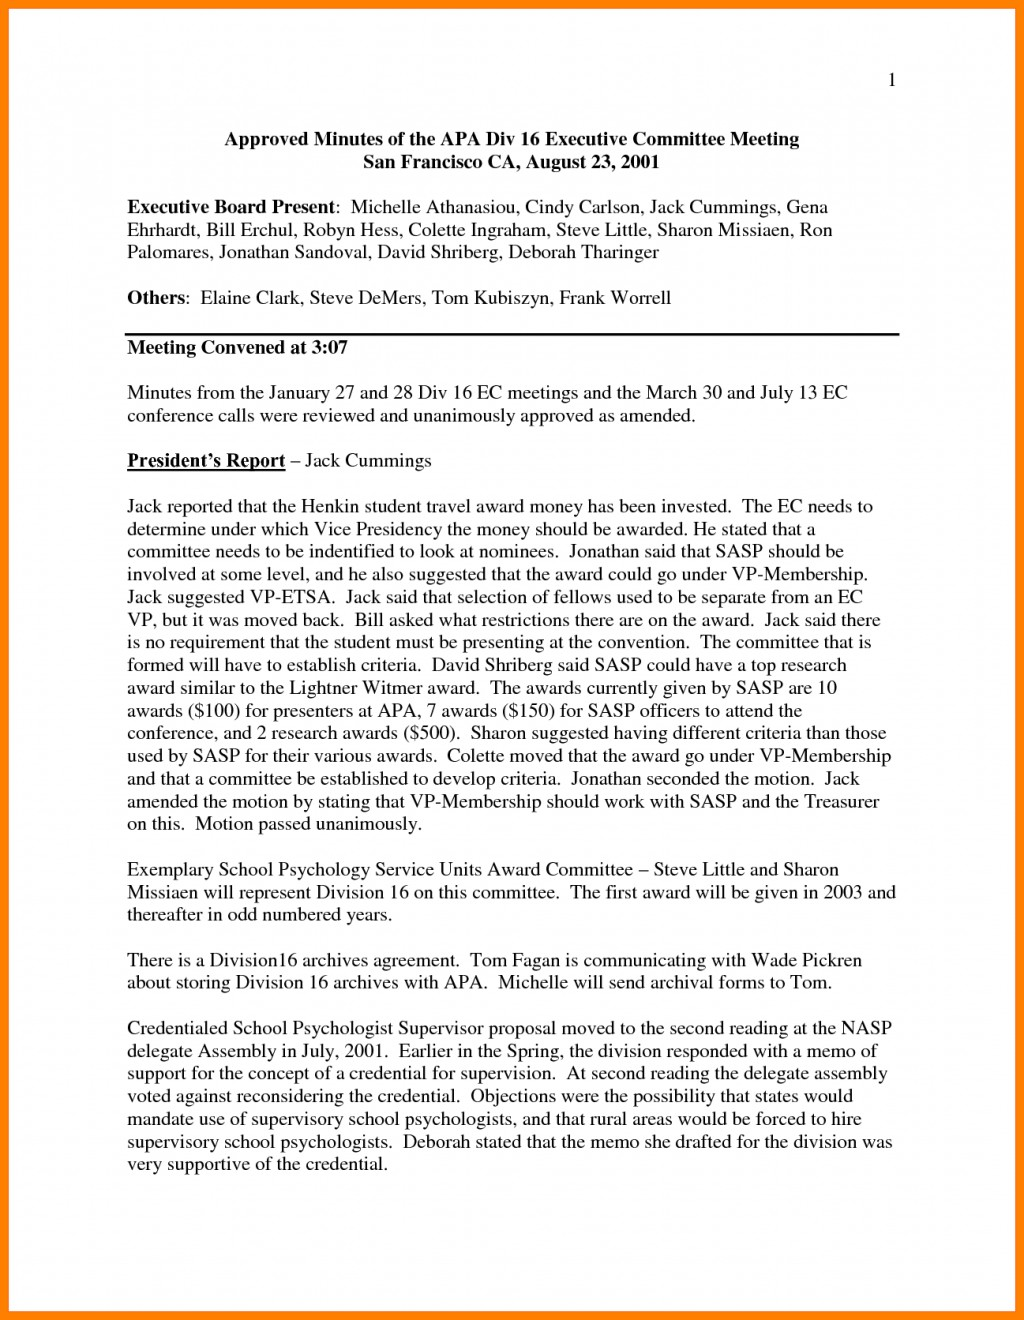 012 Research Paper Apa Style Format Memorandum Collection Of Solutions Memo Final Seee Owl Example Formatting With Guide Surprising Outline Template Reference Page Large